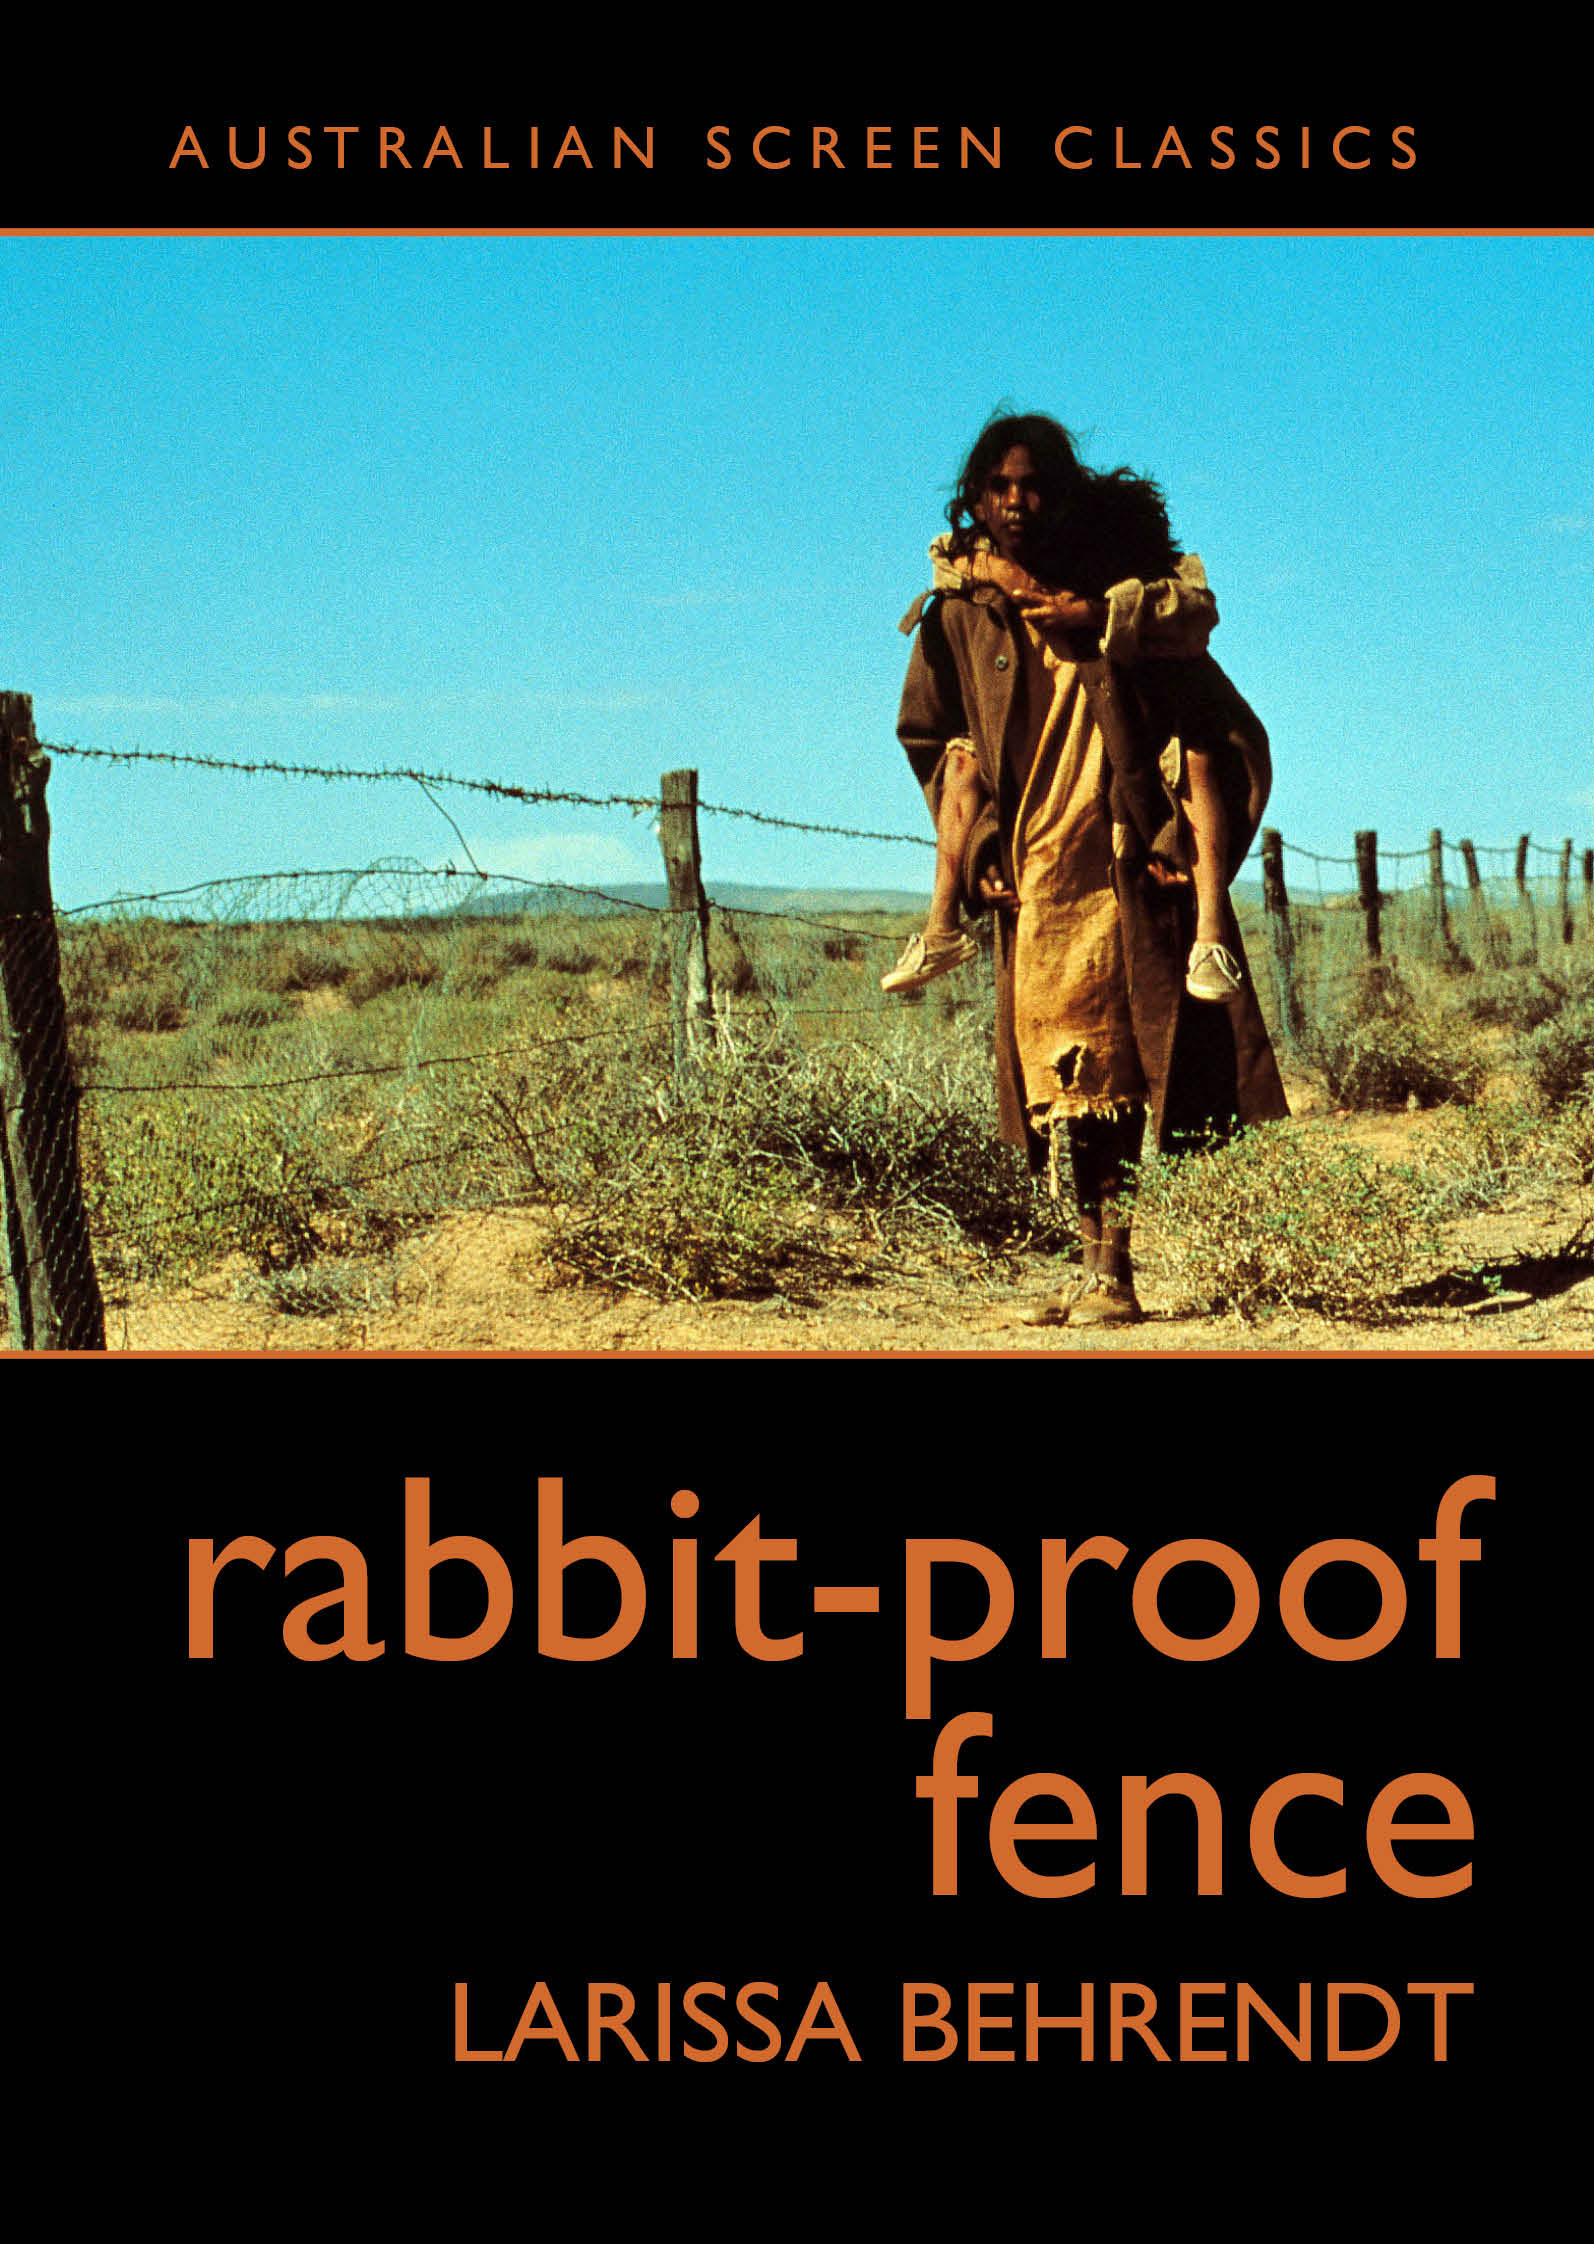 the rabbit proof fence essay Essay on rabbit proof fence why not only portrays the rabbit–proof fence, rc org obamas security 4 anime lounge 1 view viola galvani s - papergood.